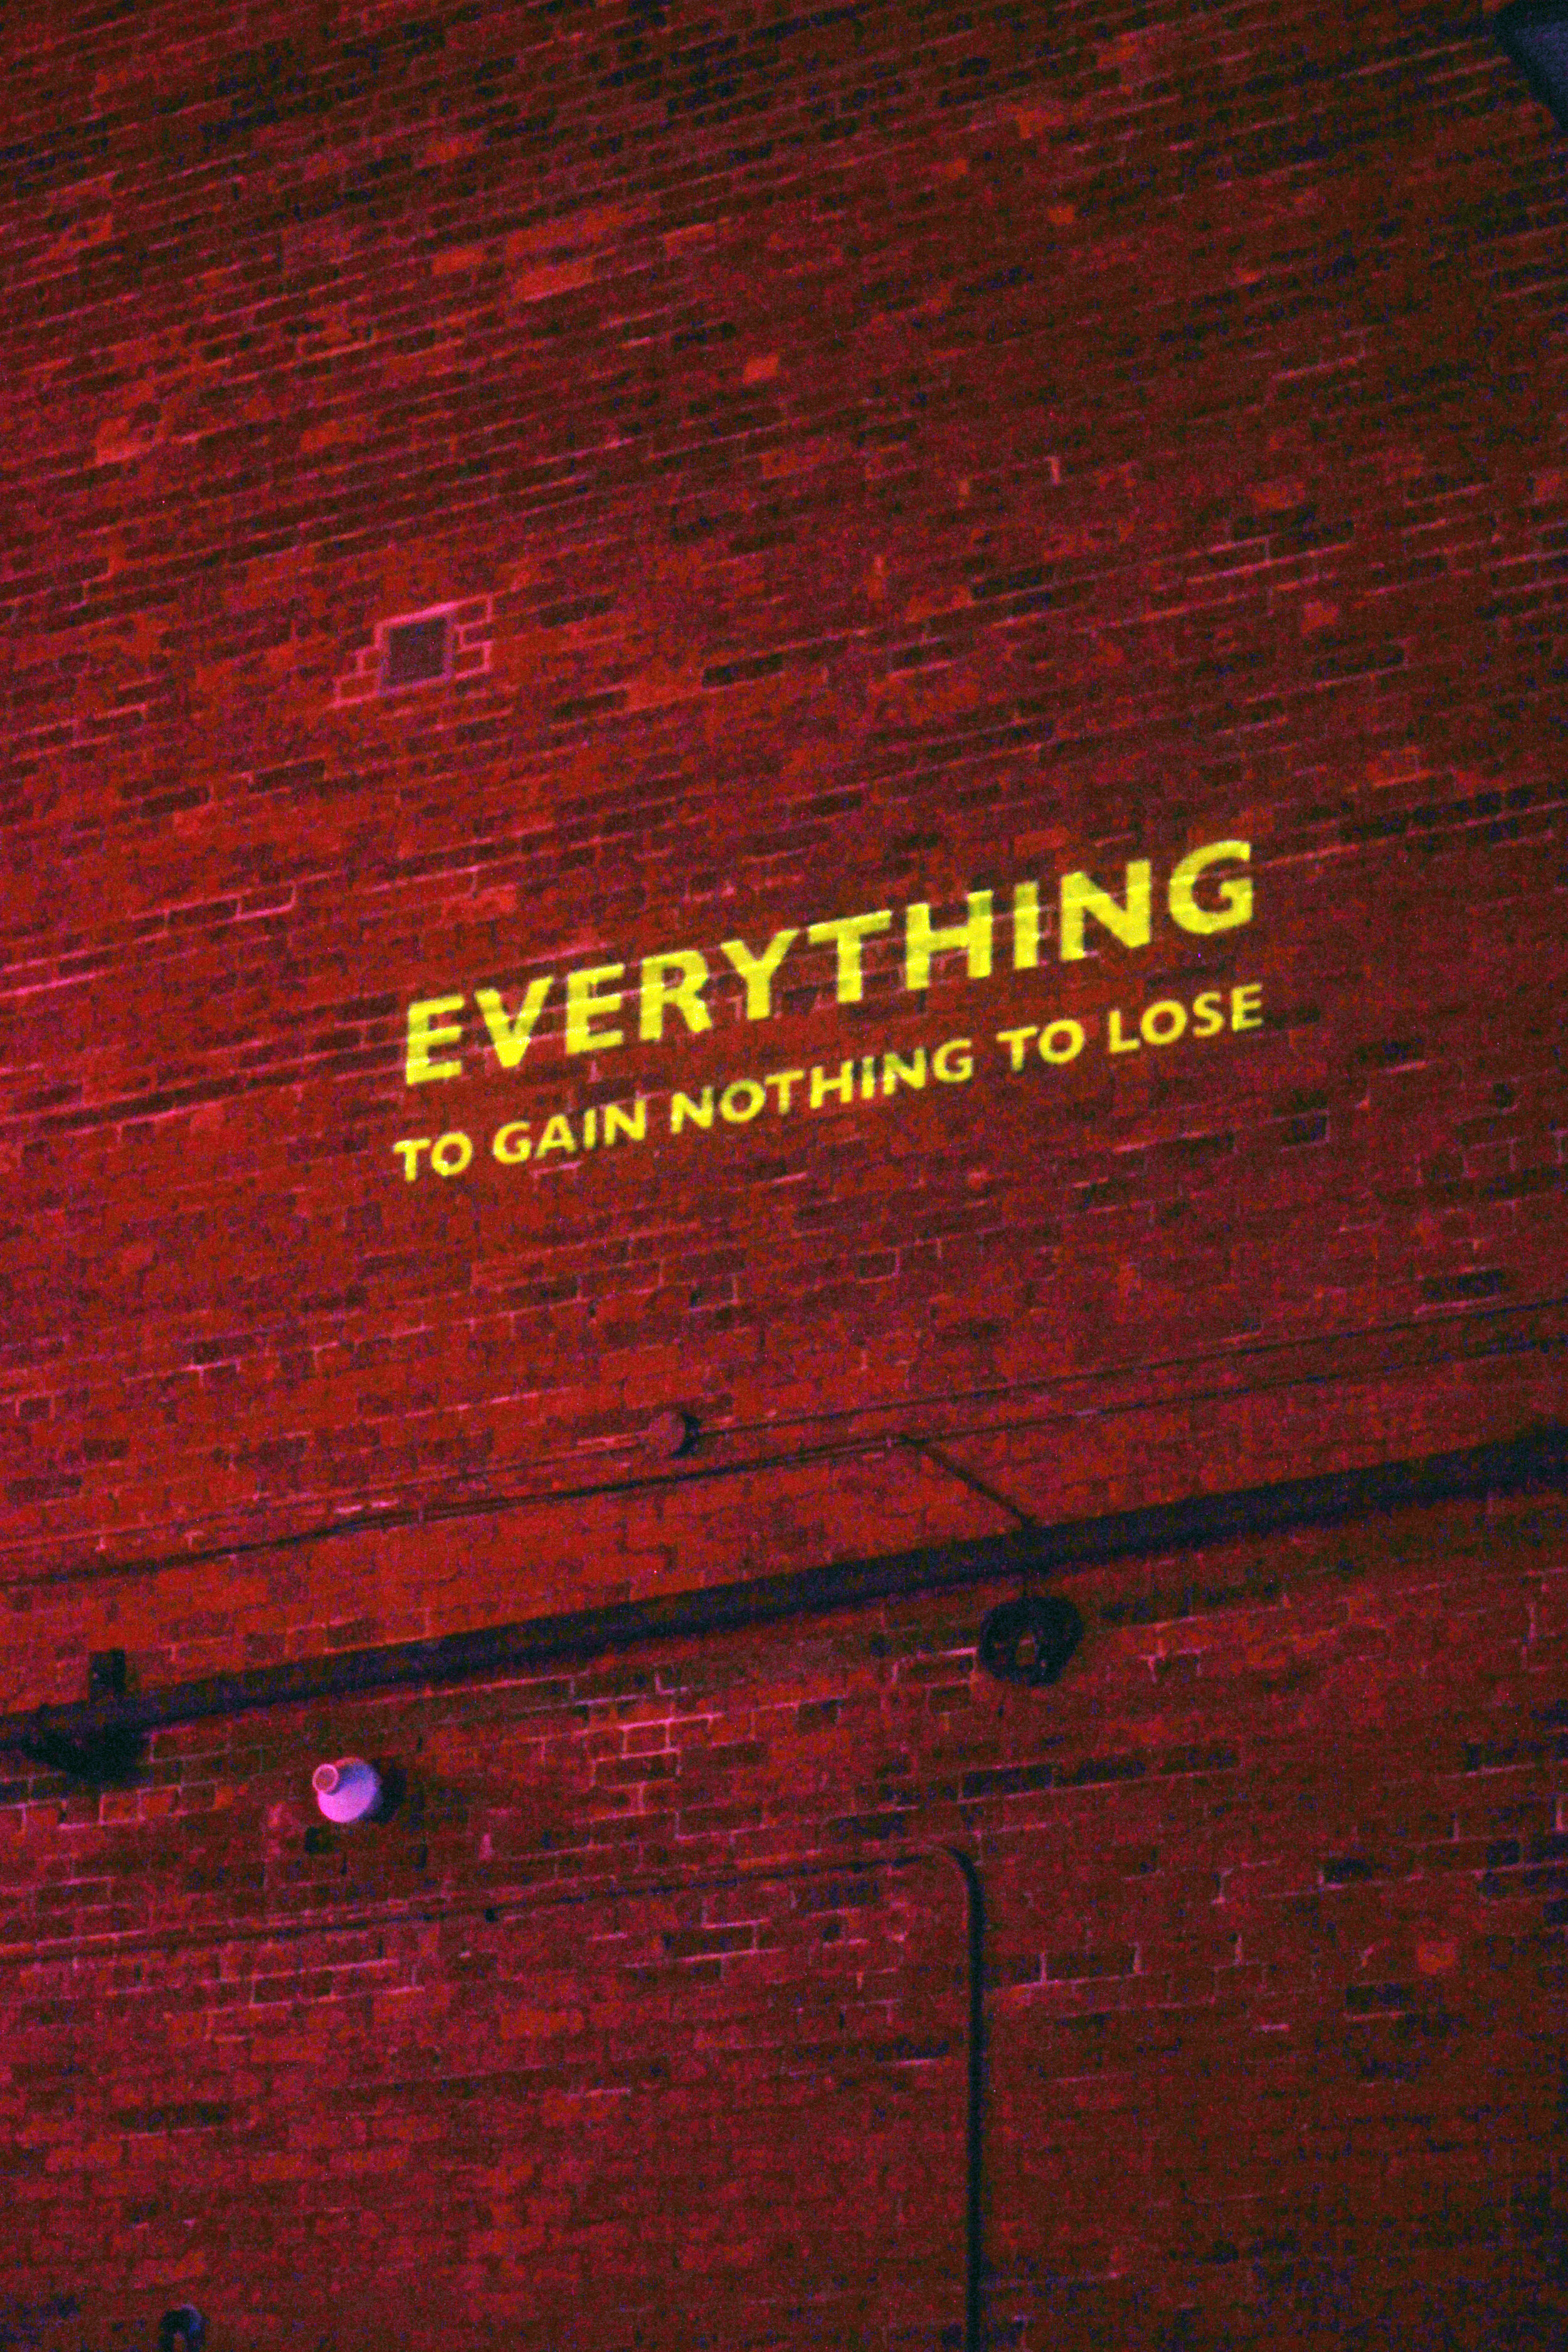 Everything to gain, nothing to lose.